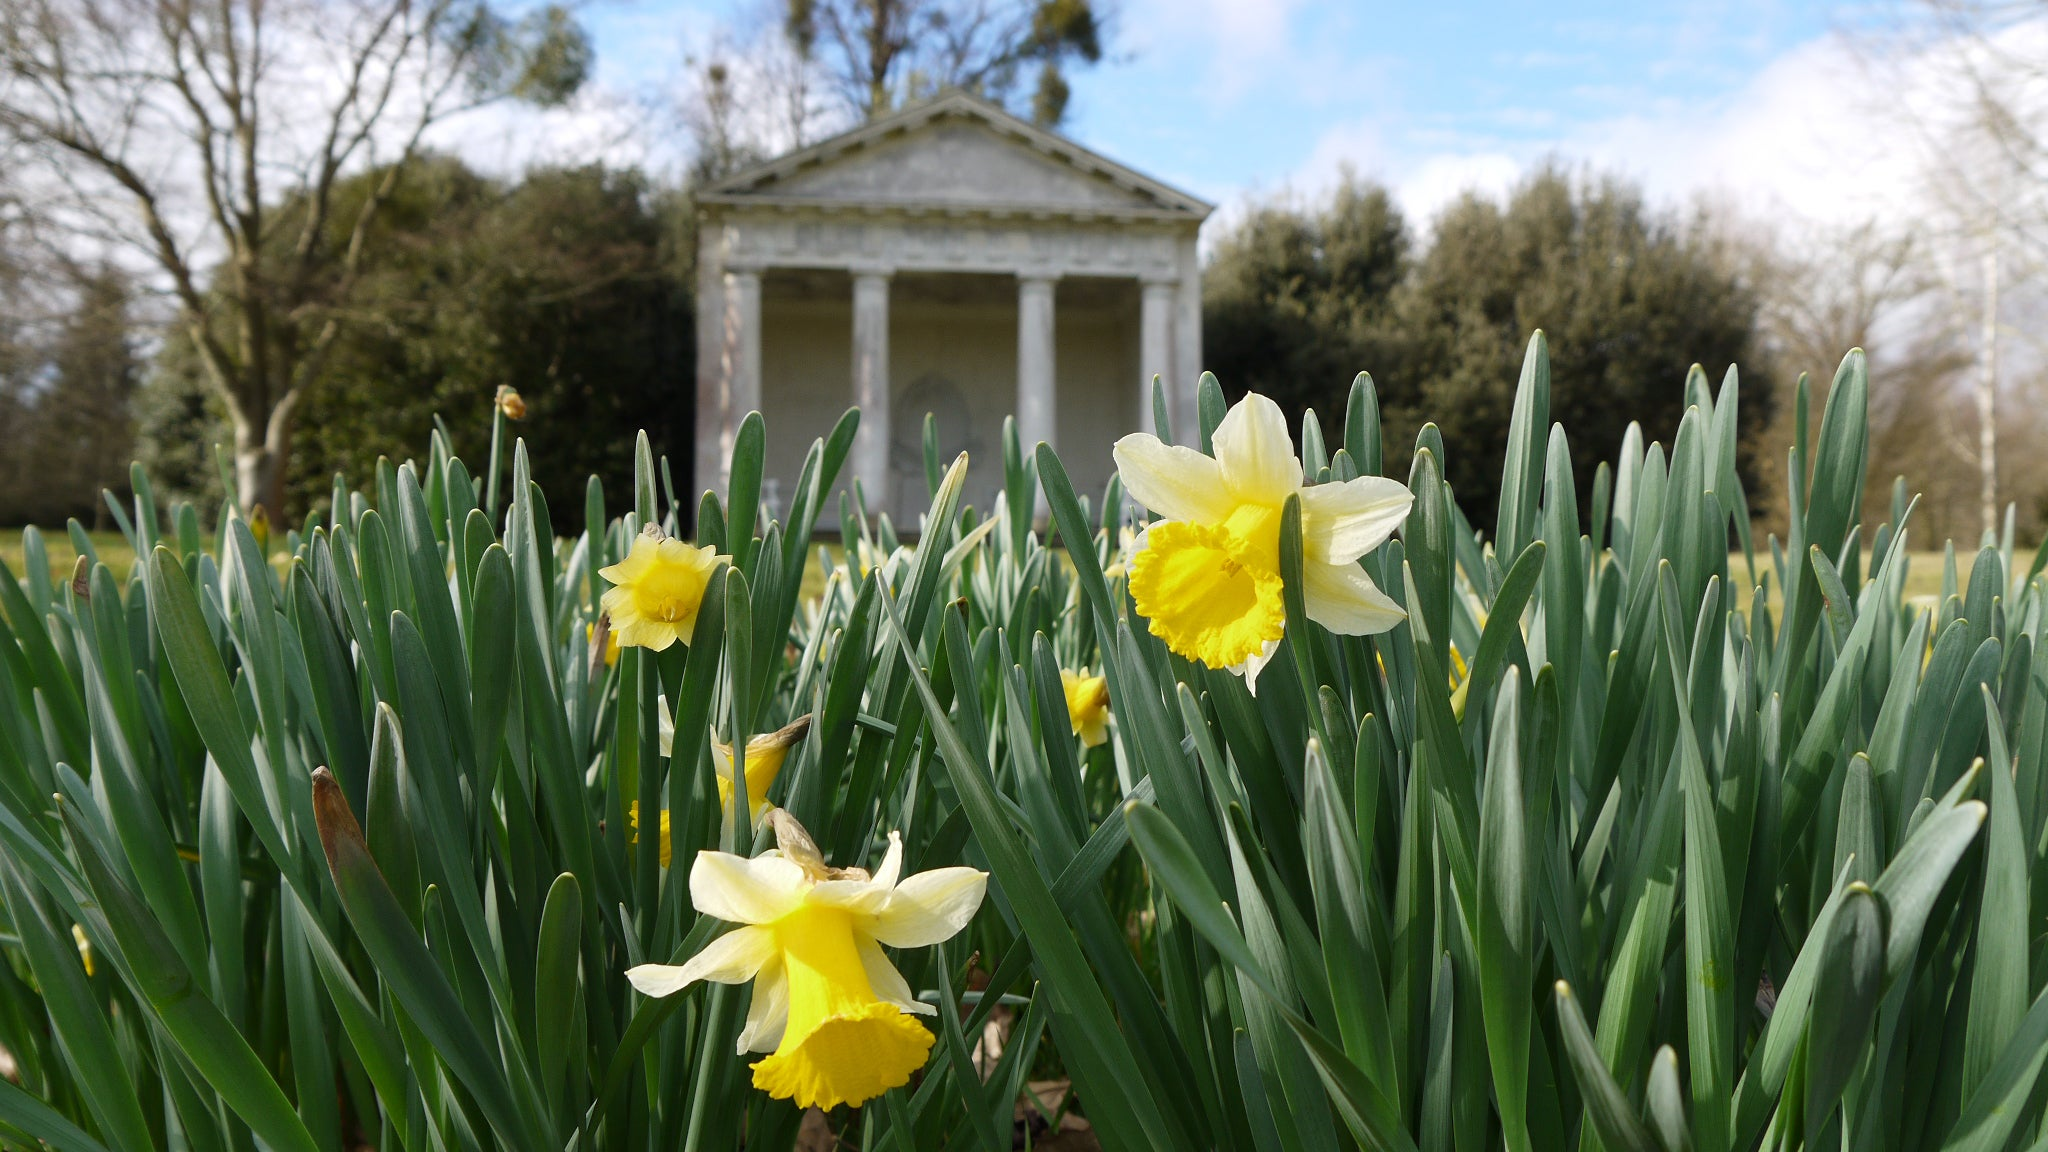 Daffodils in the Pleasure Grounds